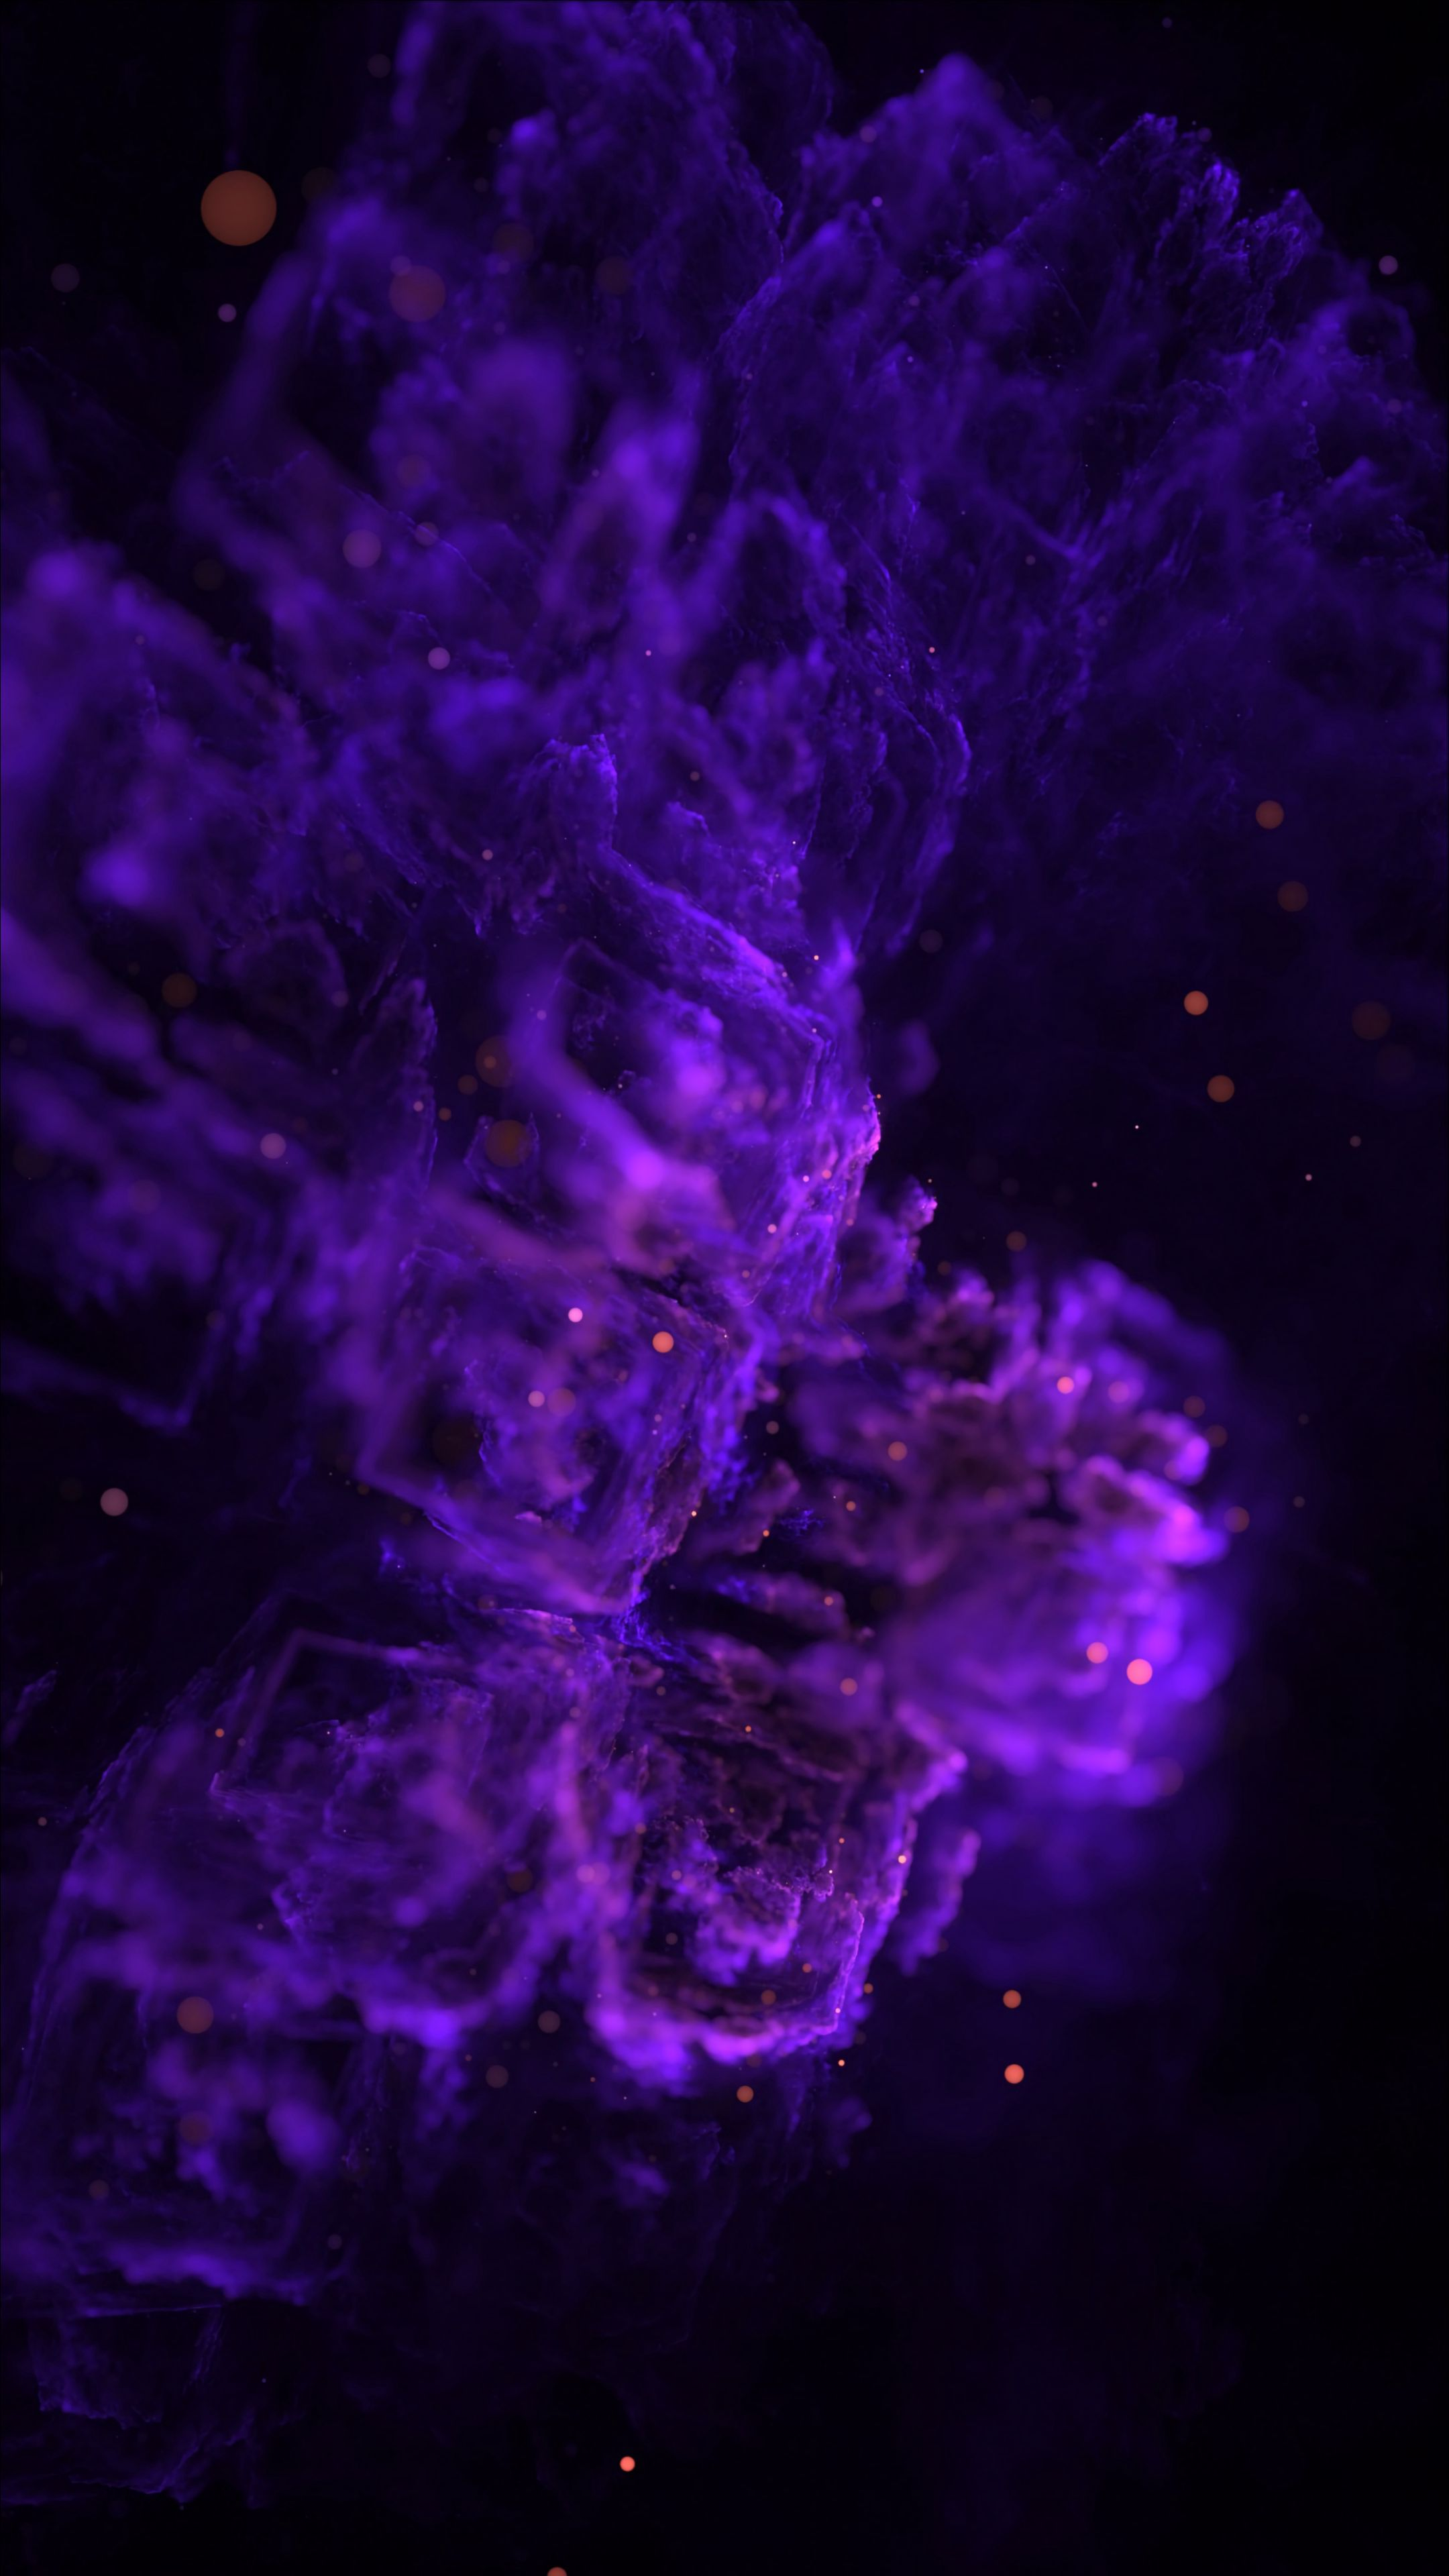 134418 download wallpaper Abstract, Clot, Fractal, Lilac, Purple, Violet screensavers and pictures for free